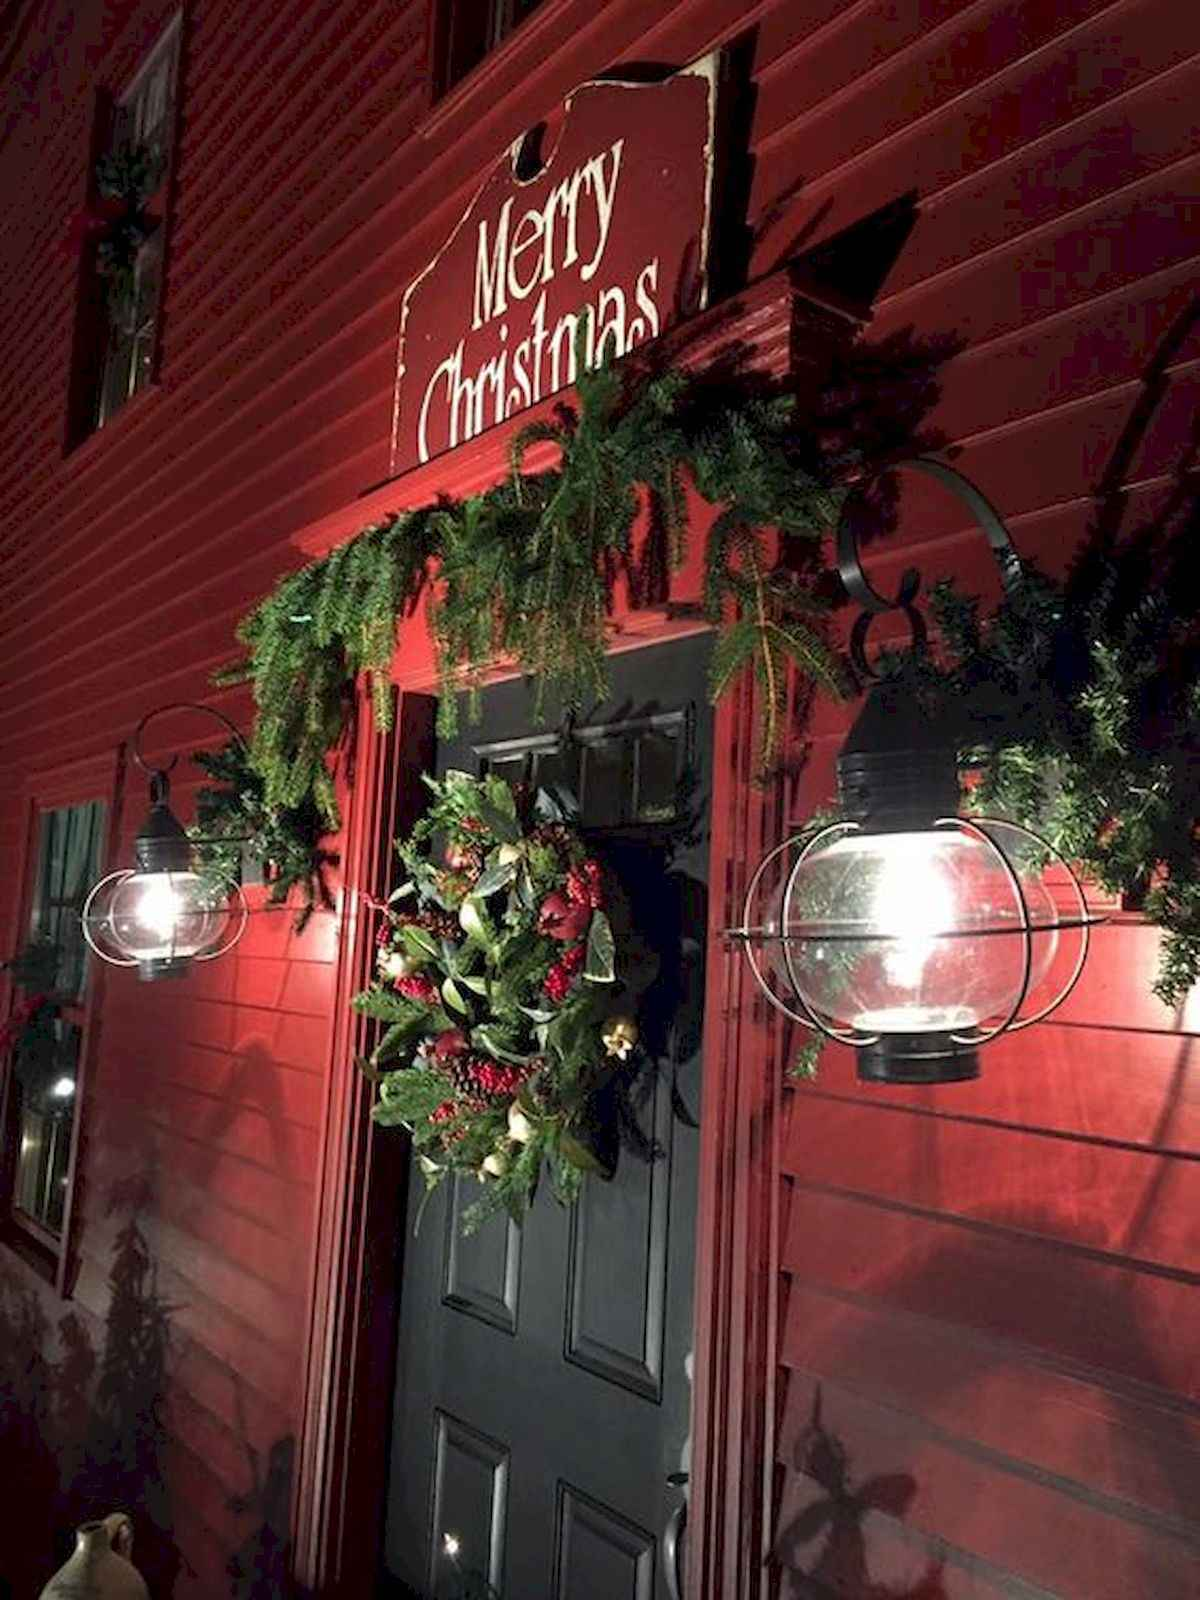 50 stunning front porch christmas lights decorations ideas (29)